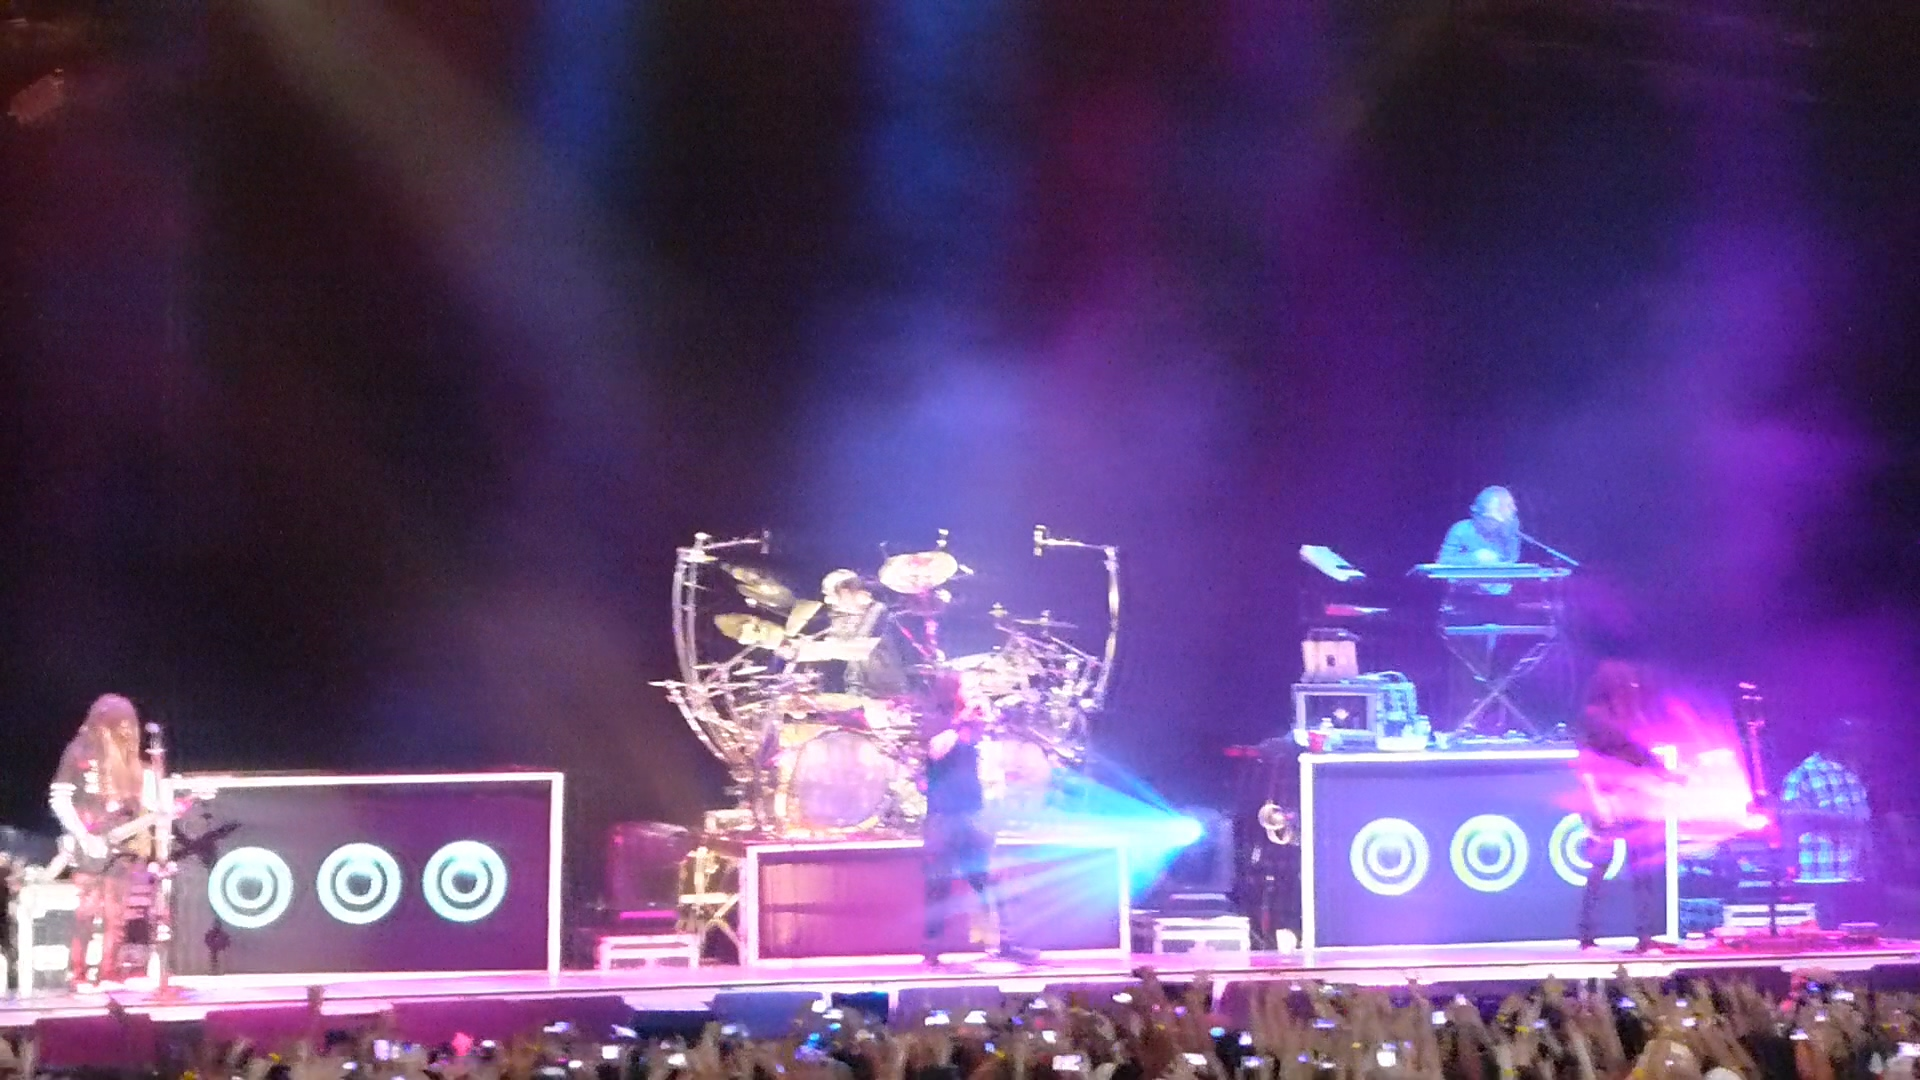 KoRn 2014-08-09 Gexa Energy Pavilion, Dallas, TX, USA (Nameless HD 1080)